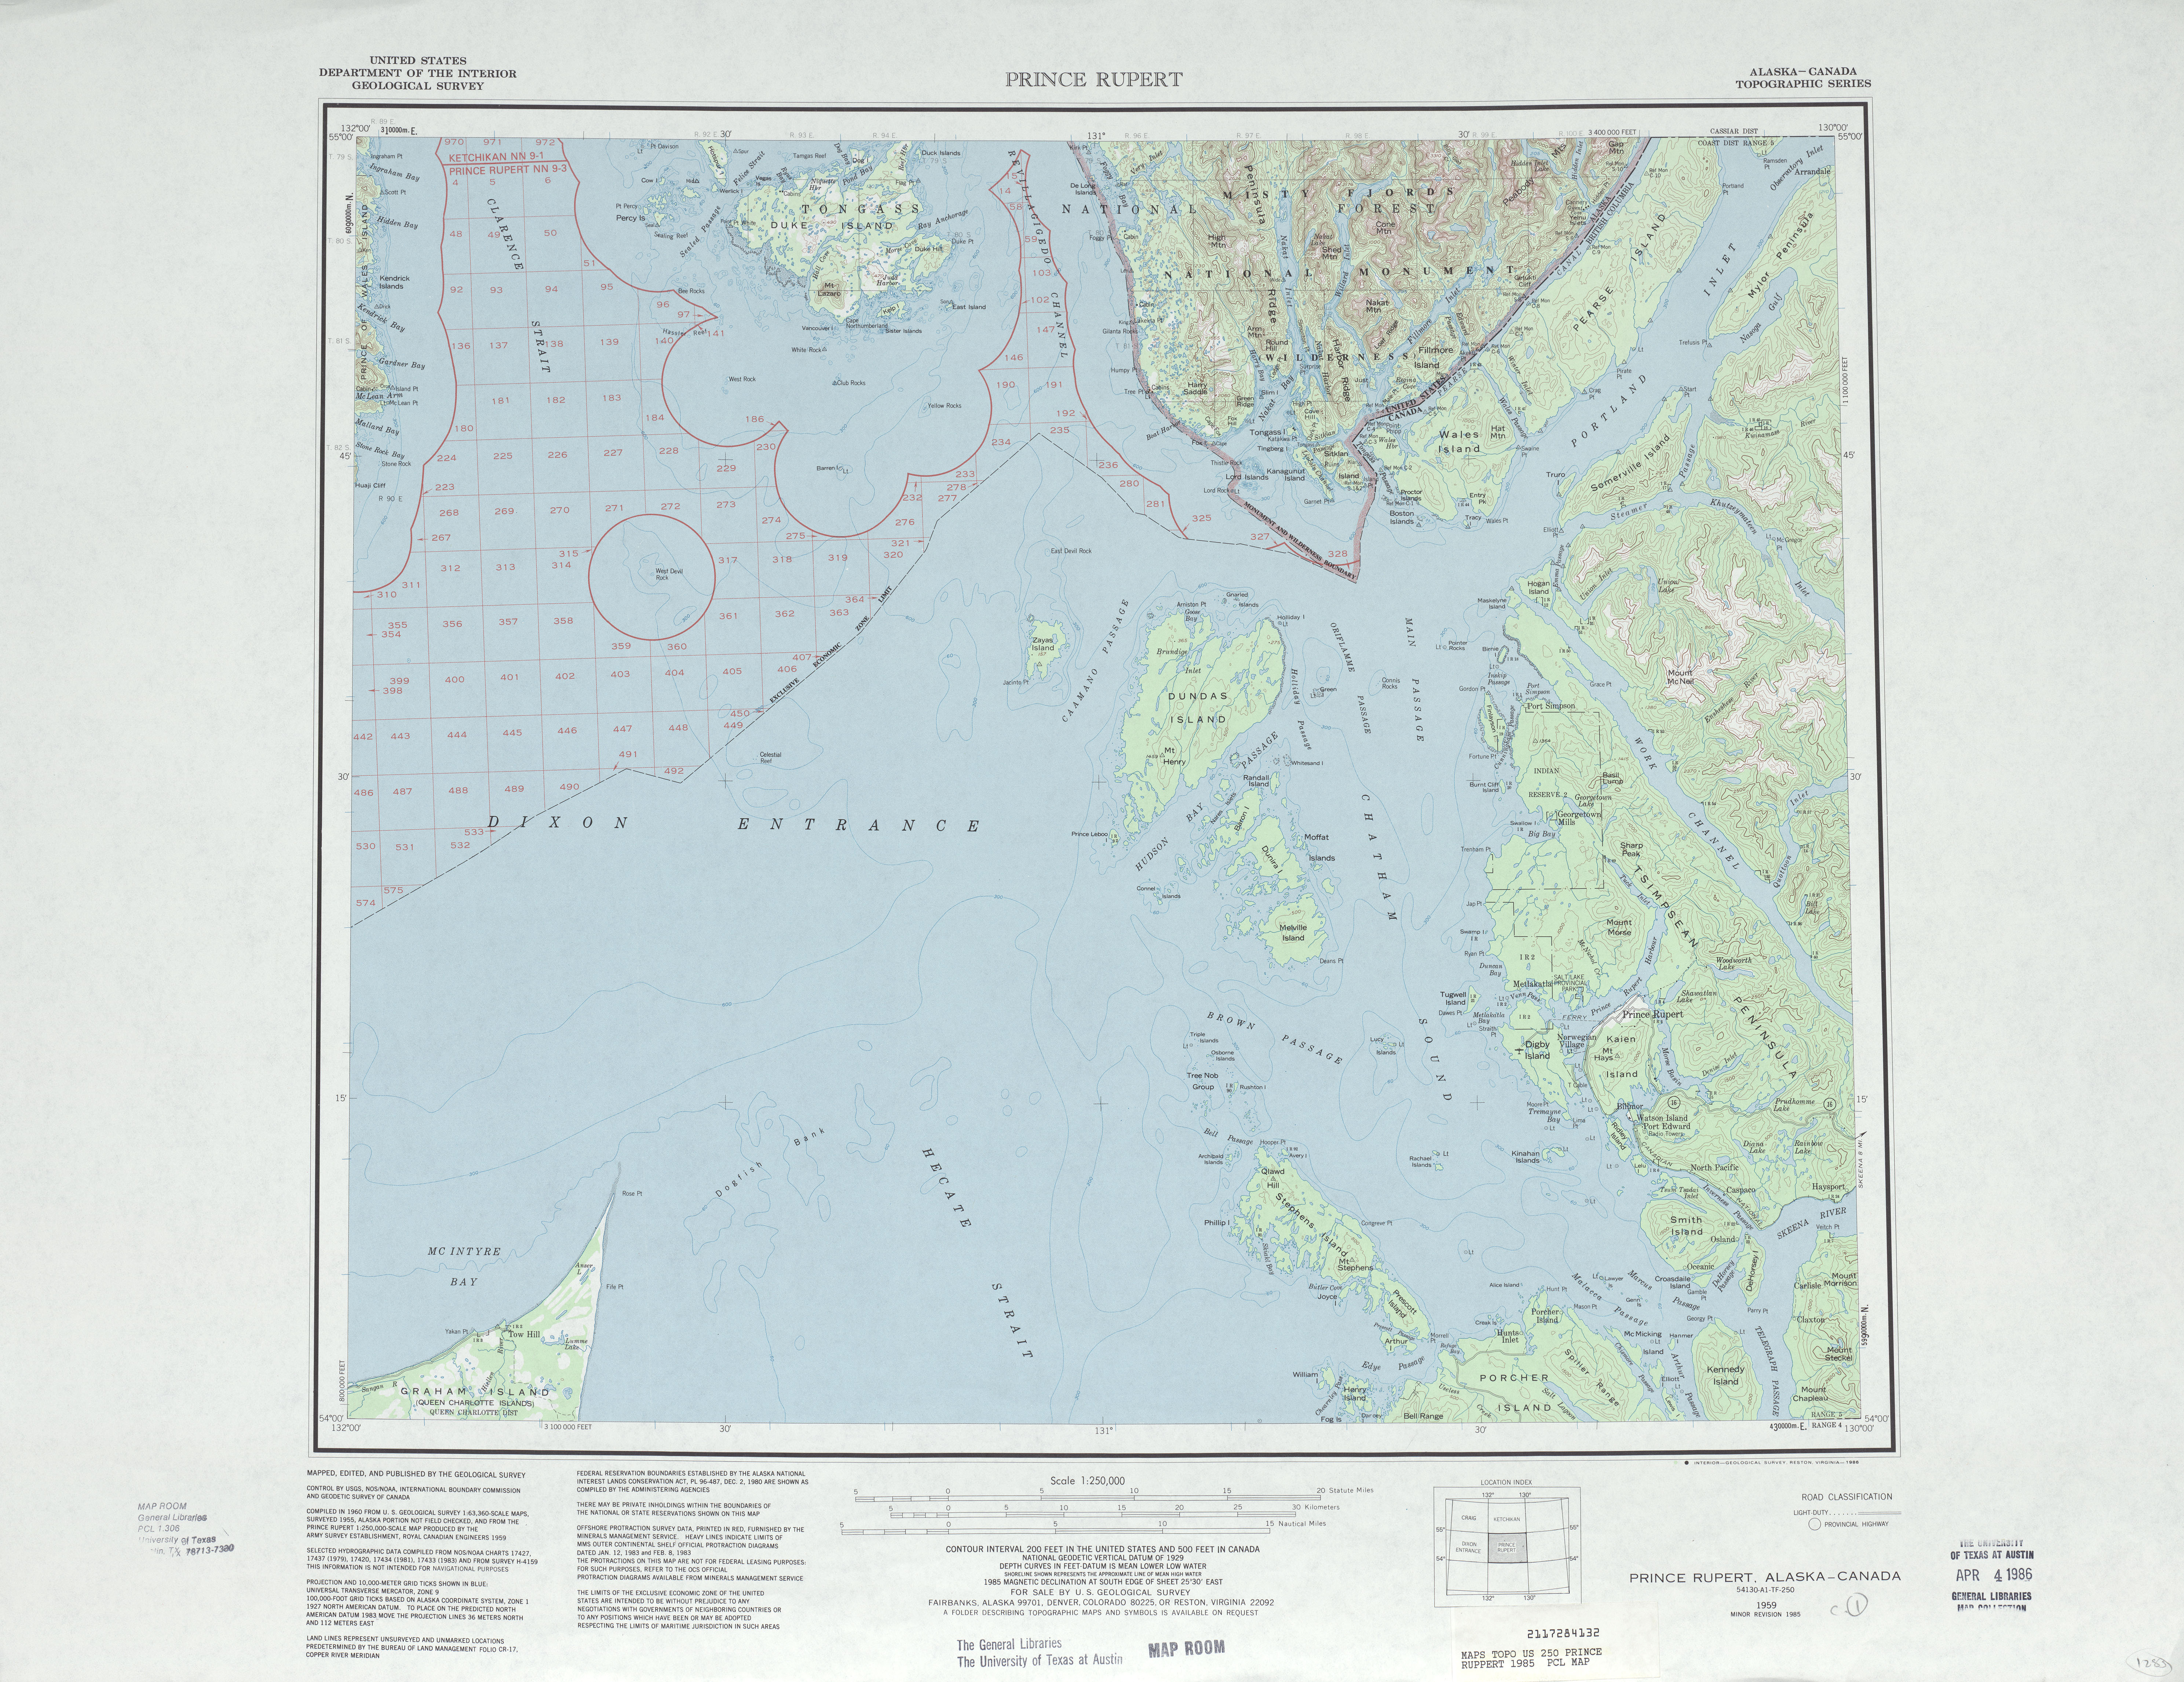 Prince Rupert Topographic Map Sheet, United States 1985